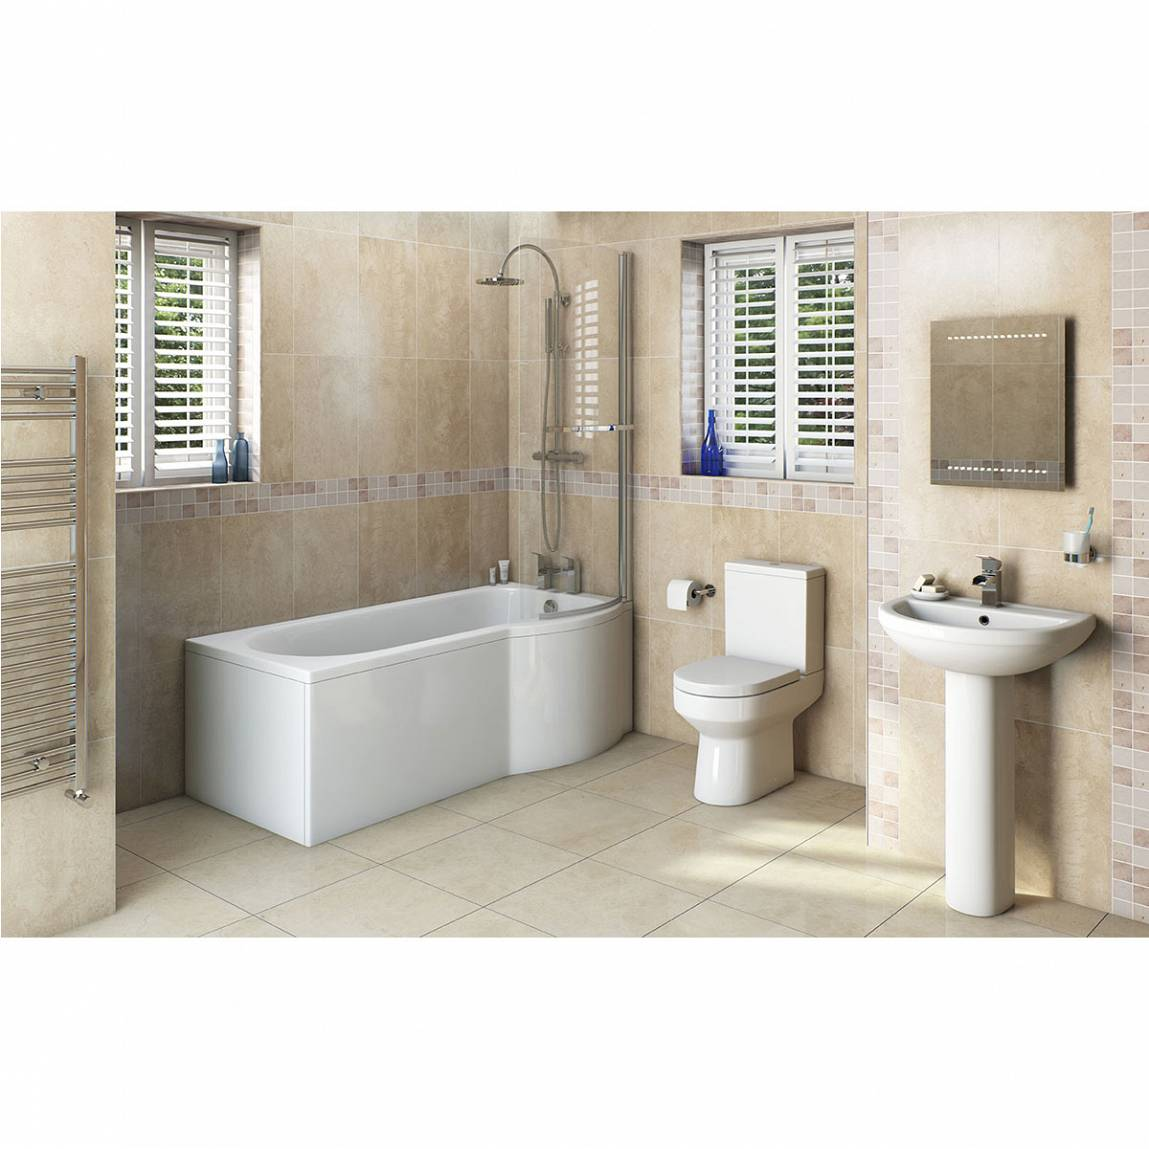 Image of Oakley Bathroom Suite with Evesham 1700 x 850 Shower Bath RH & Free Tap